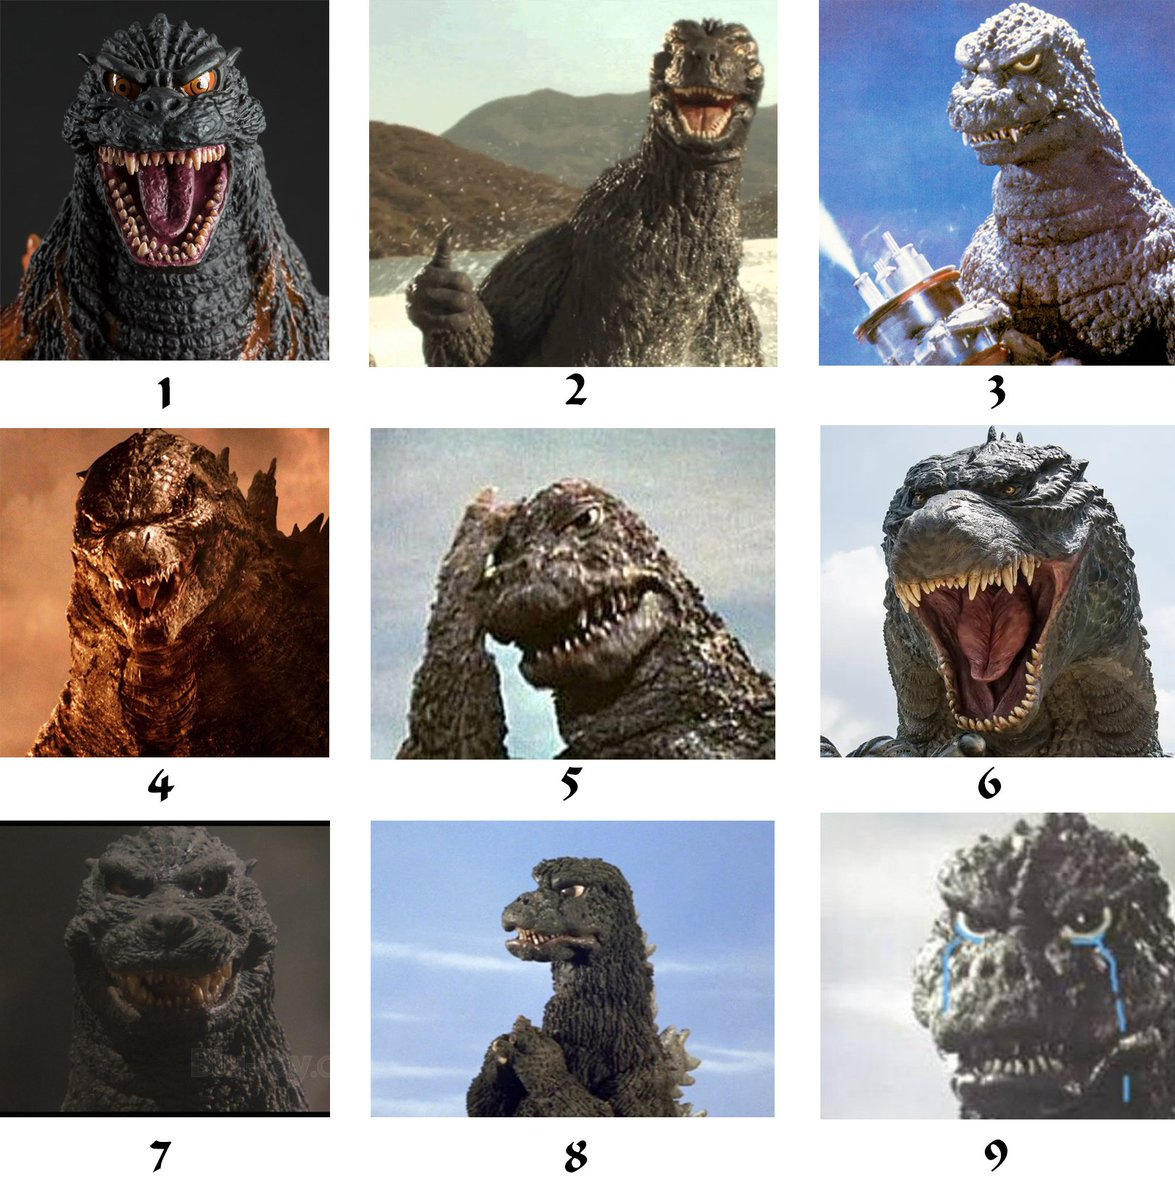 Dea Poirier On Twitter On The Godzilla Scale How Are You Doing Today